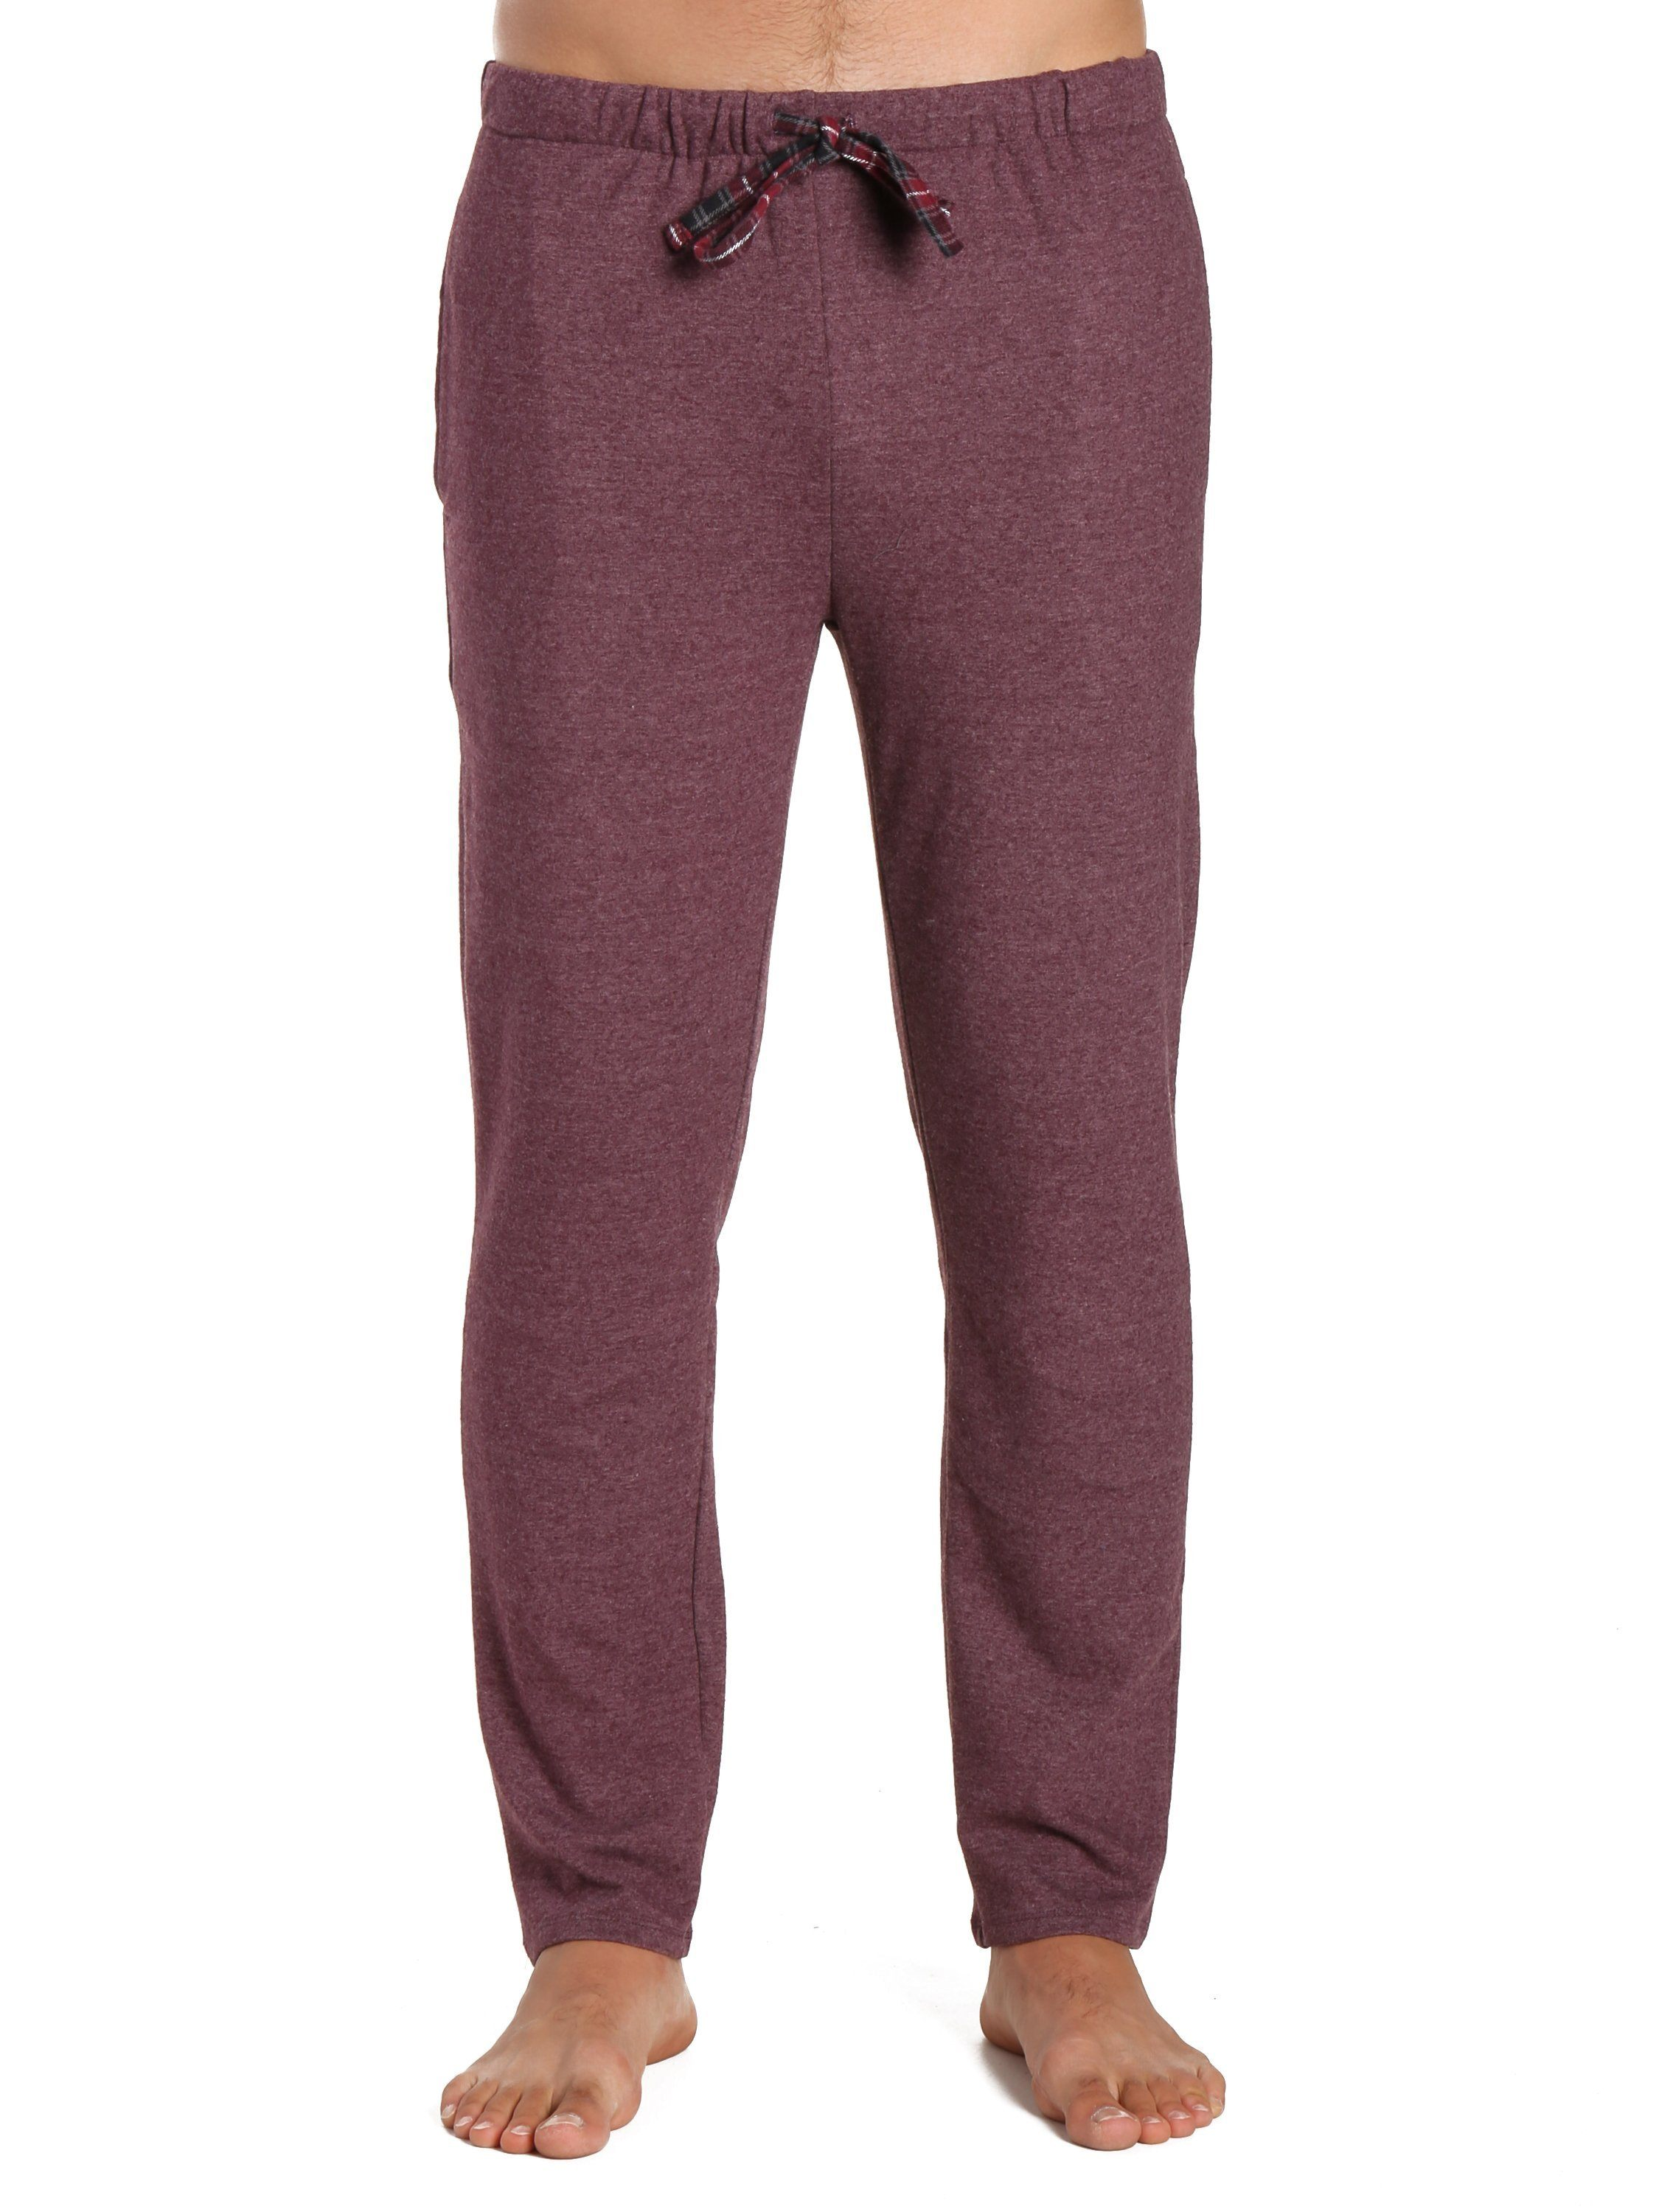 Men's Soft Brushed Rib Slim Fit Lounge Pant - Heathered Fig